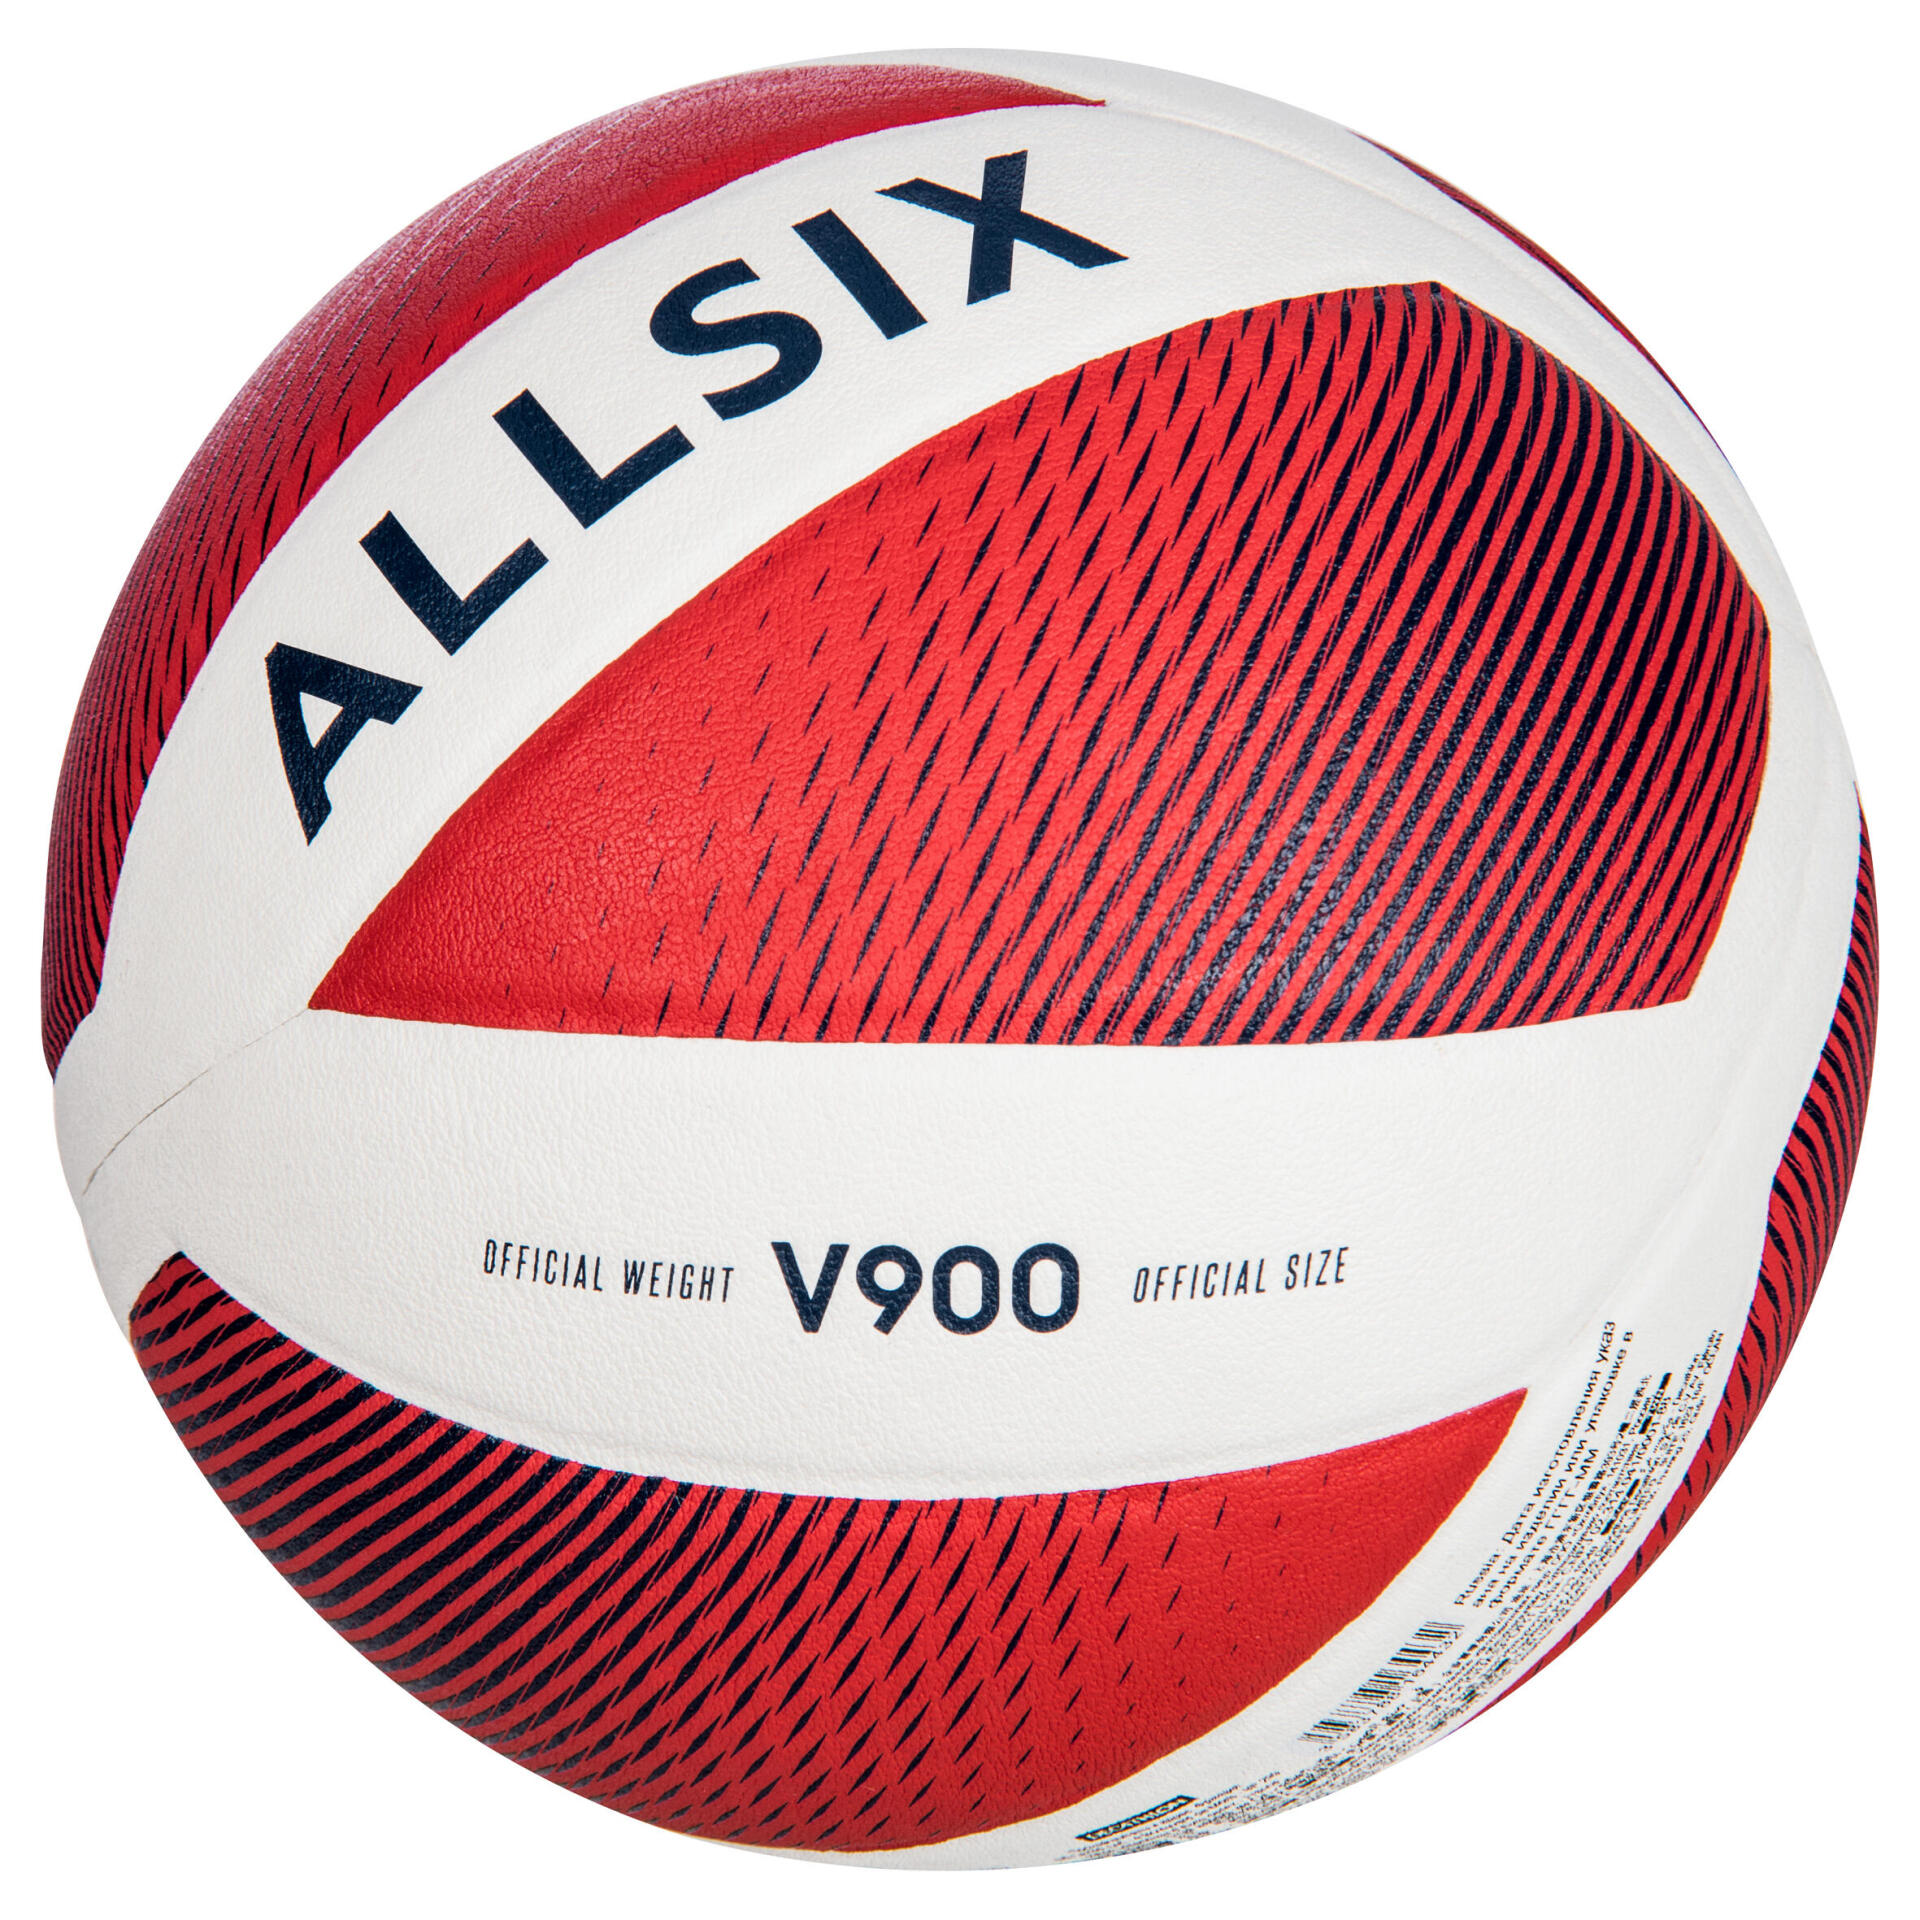 How to choose a volleyball ball